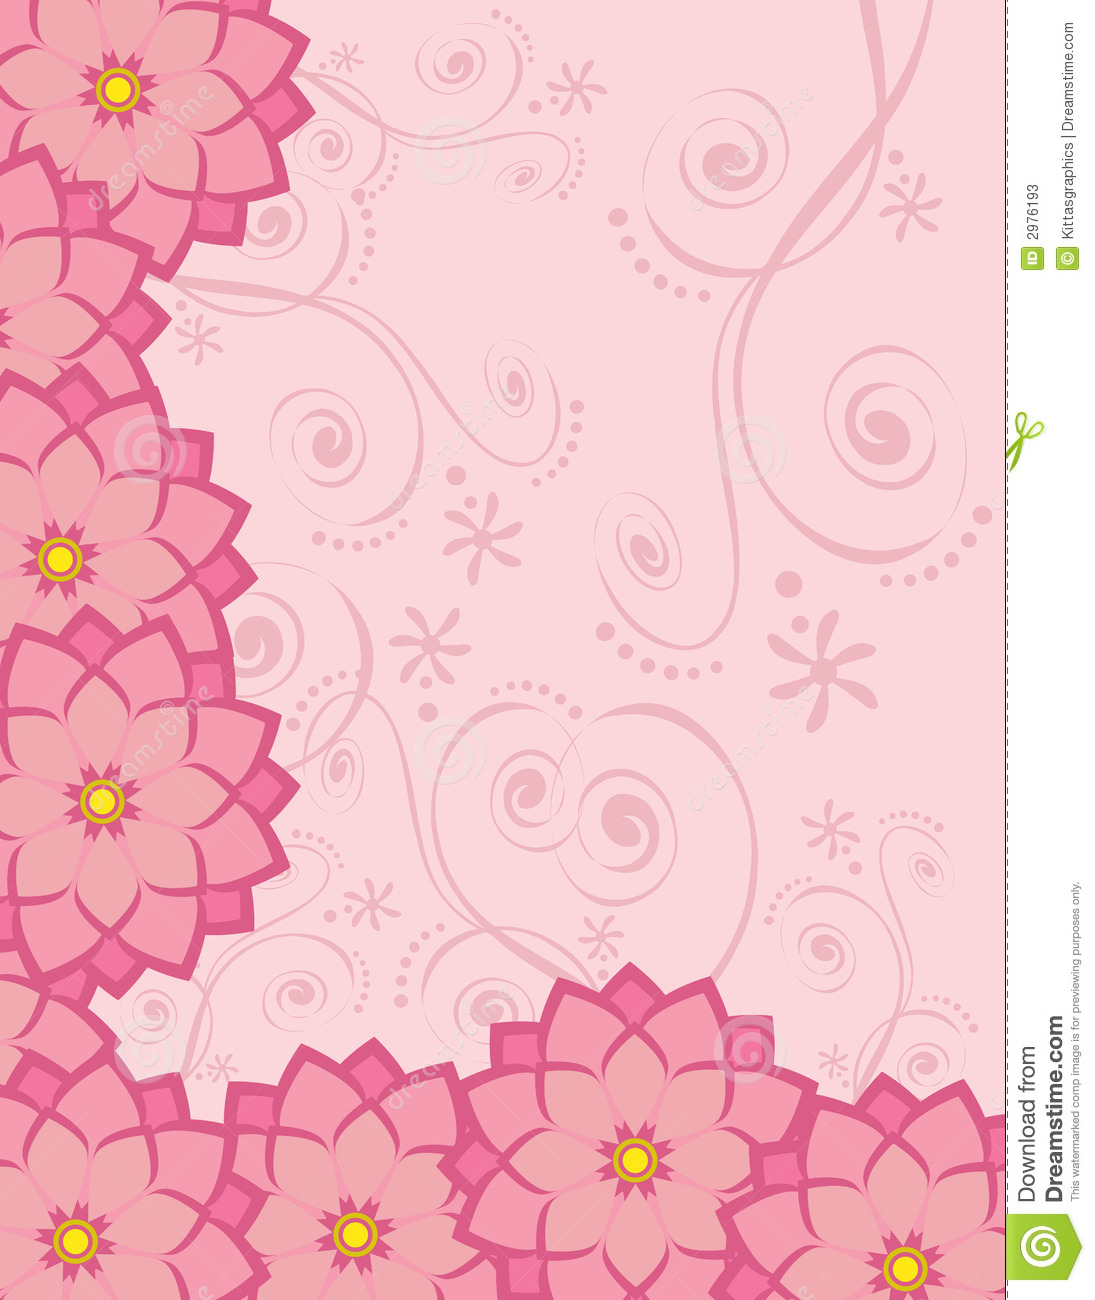 Background Stationary Flowers Stock Vector - Image: 2976193